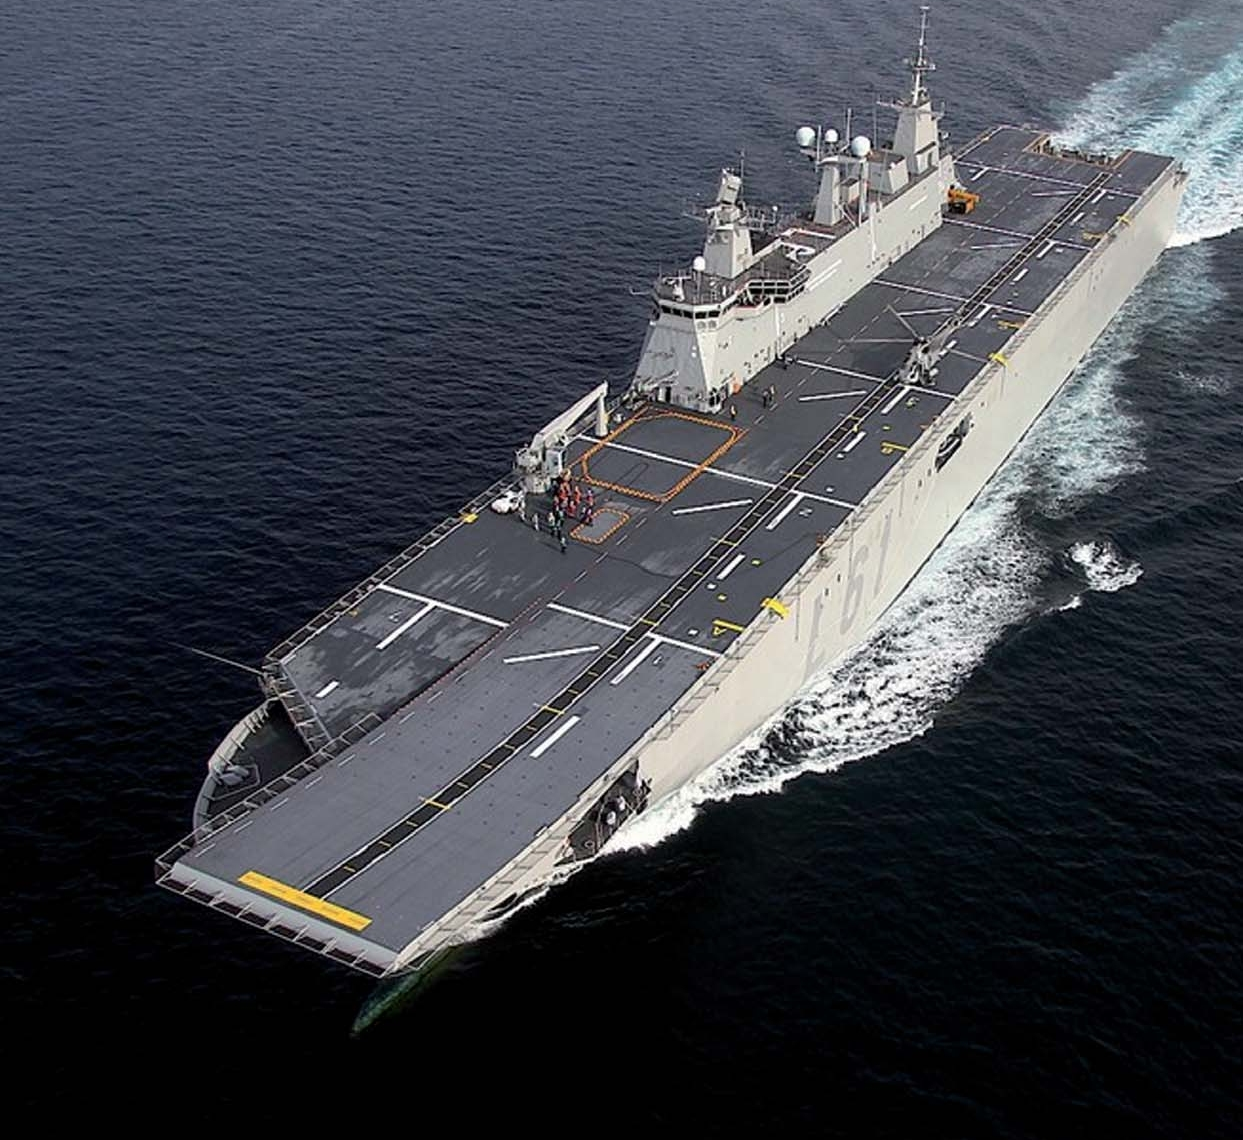 Hmas Adelaide L01 Helicopter Carrier The Power Of Royal Australian Navy